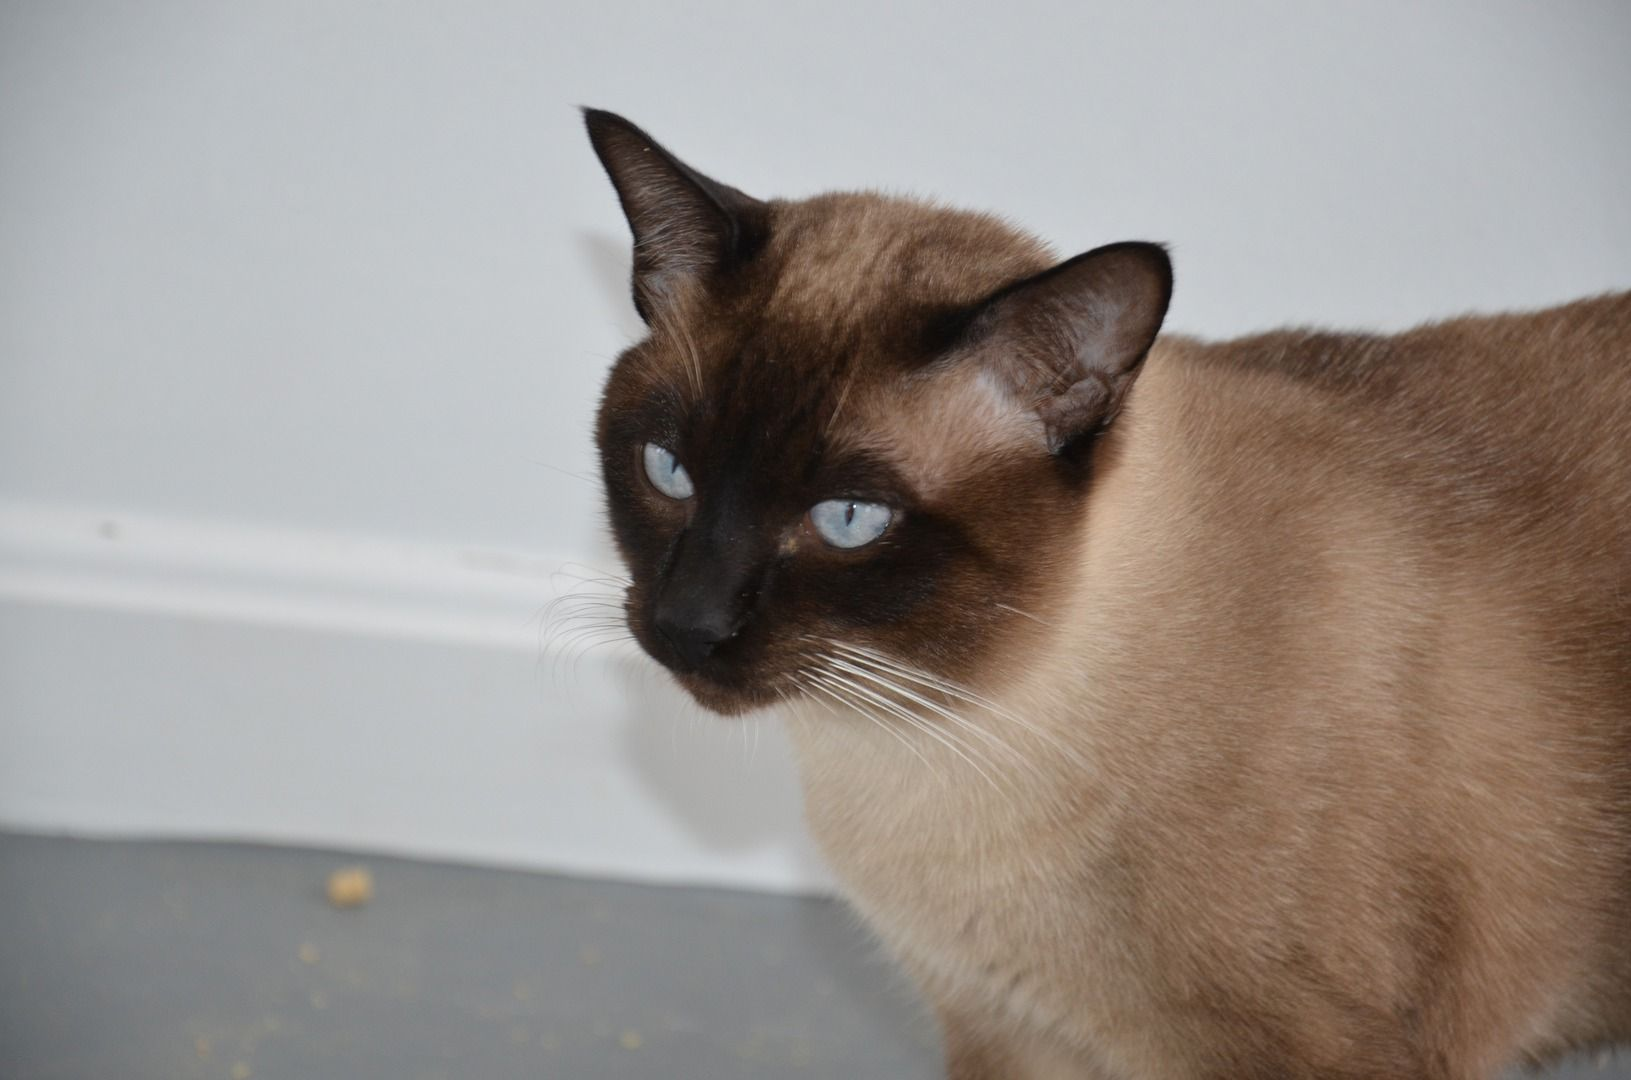 We Import Burmese Siamese And Tonkinese Cats From Thailand Thailand Is Home To An Incredible Race Of Cats With Distincti Tonkinese Cat Tonkinese Burmese Cat